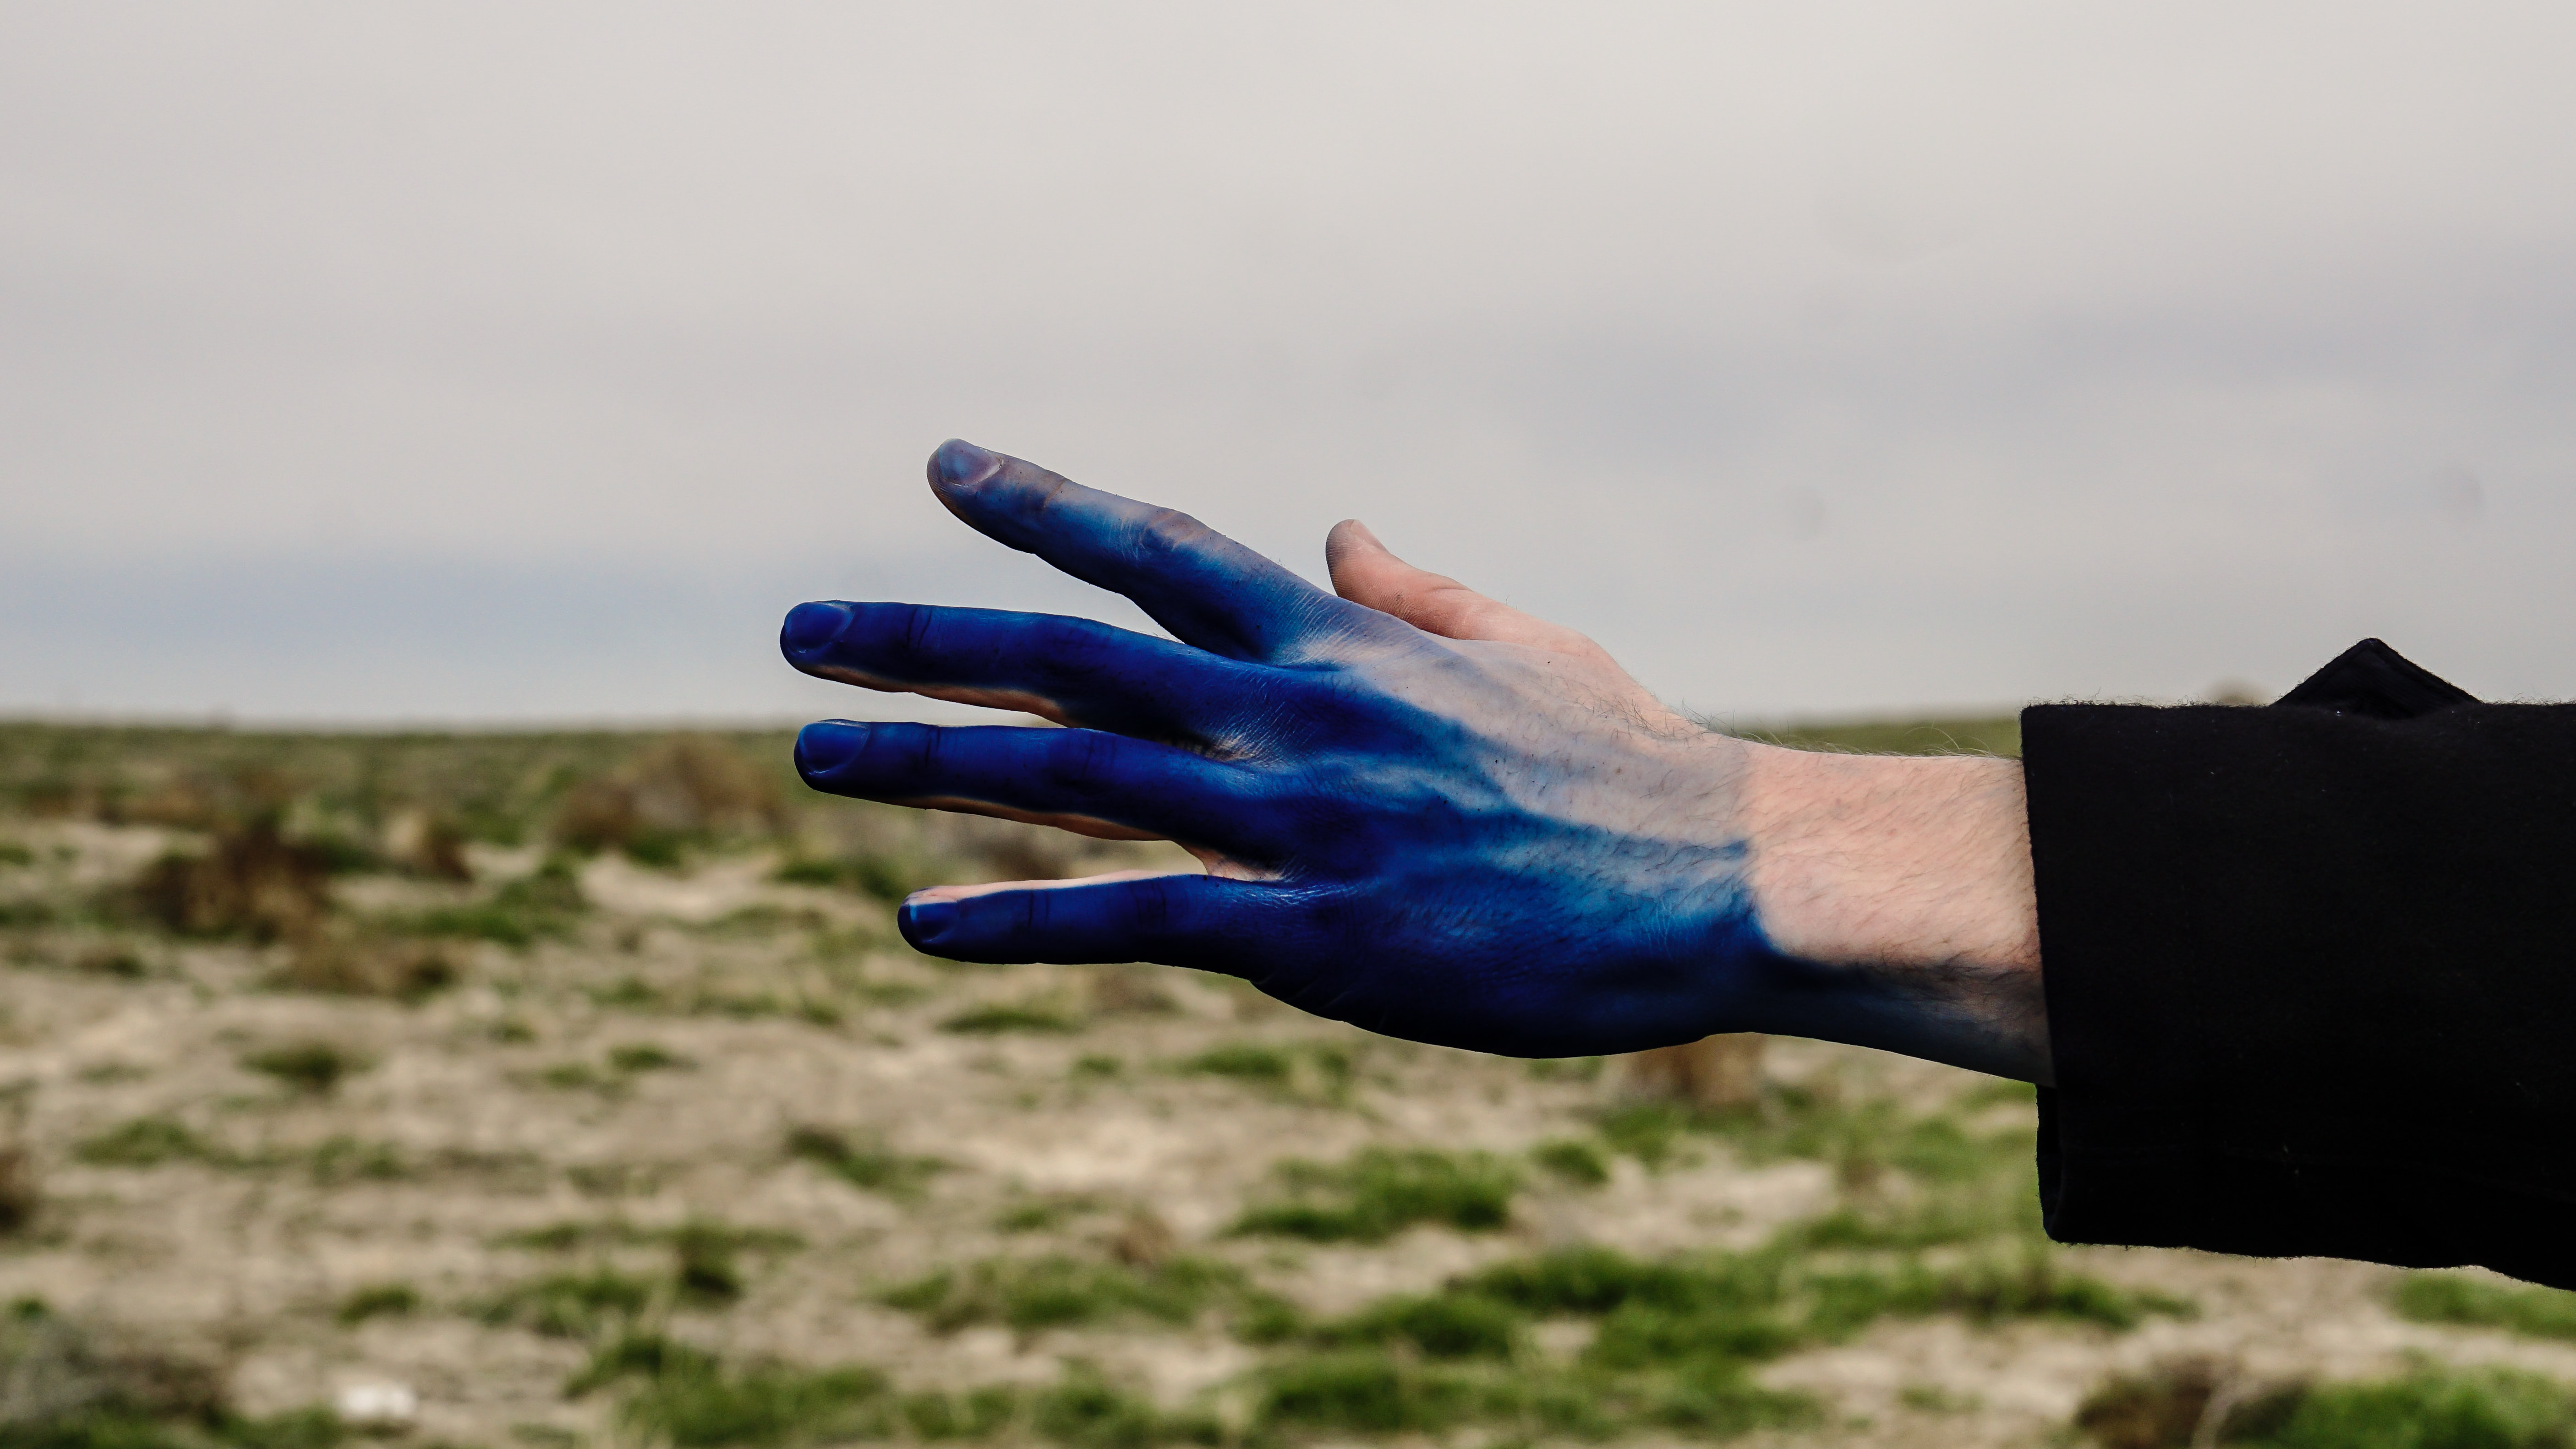 A person reaching out with their blue paint covered hand.